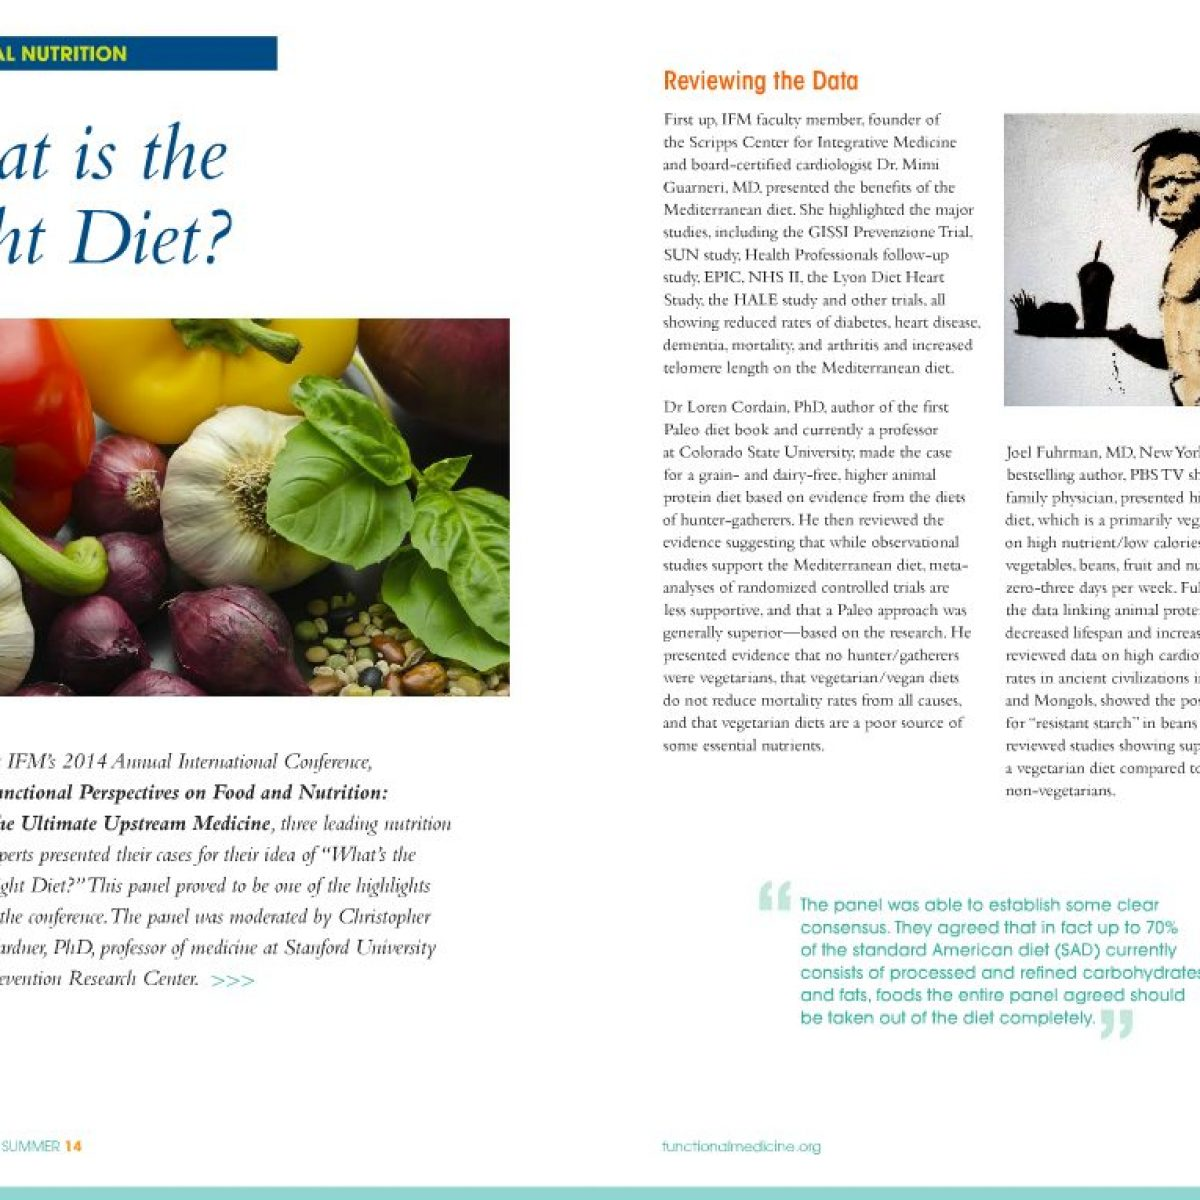 What is the right diet?